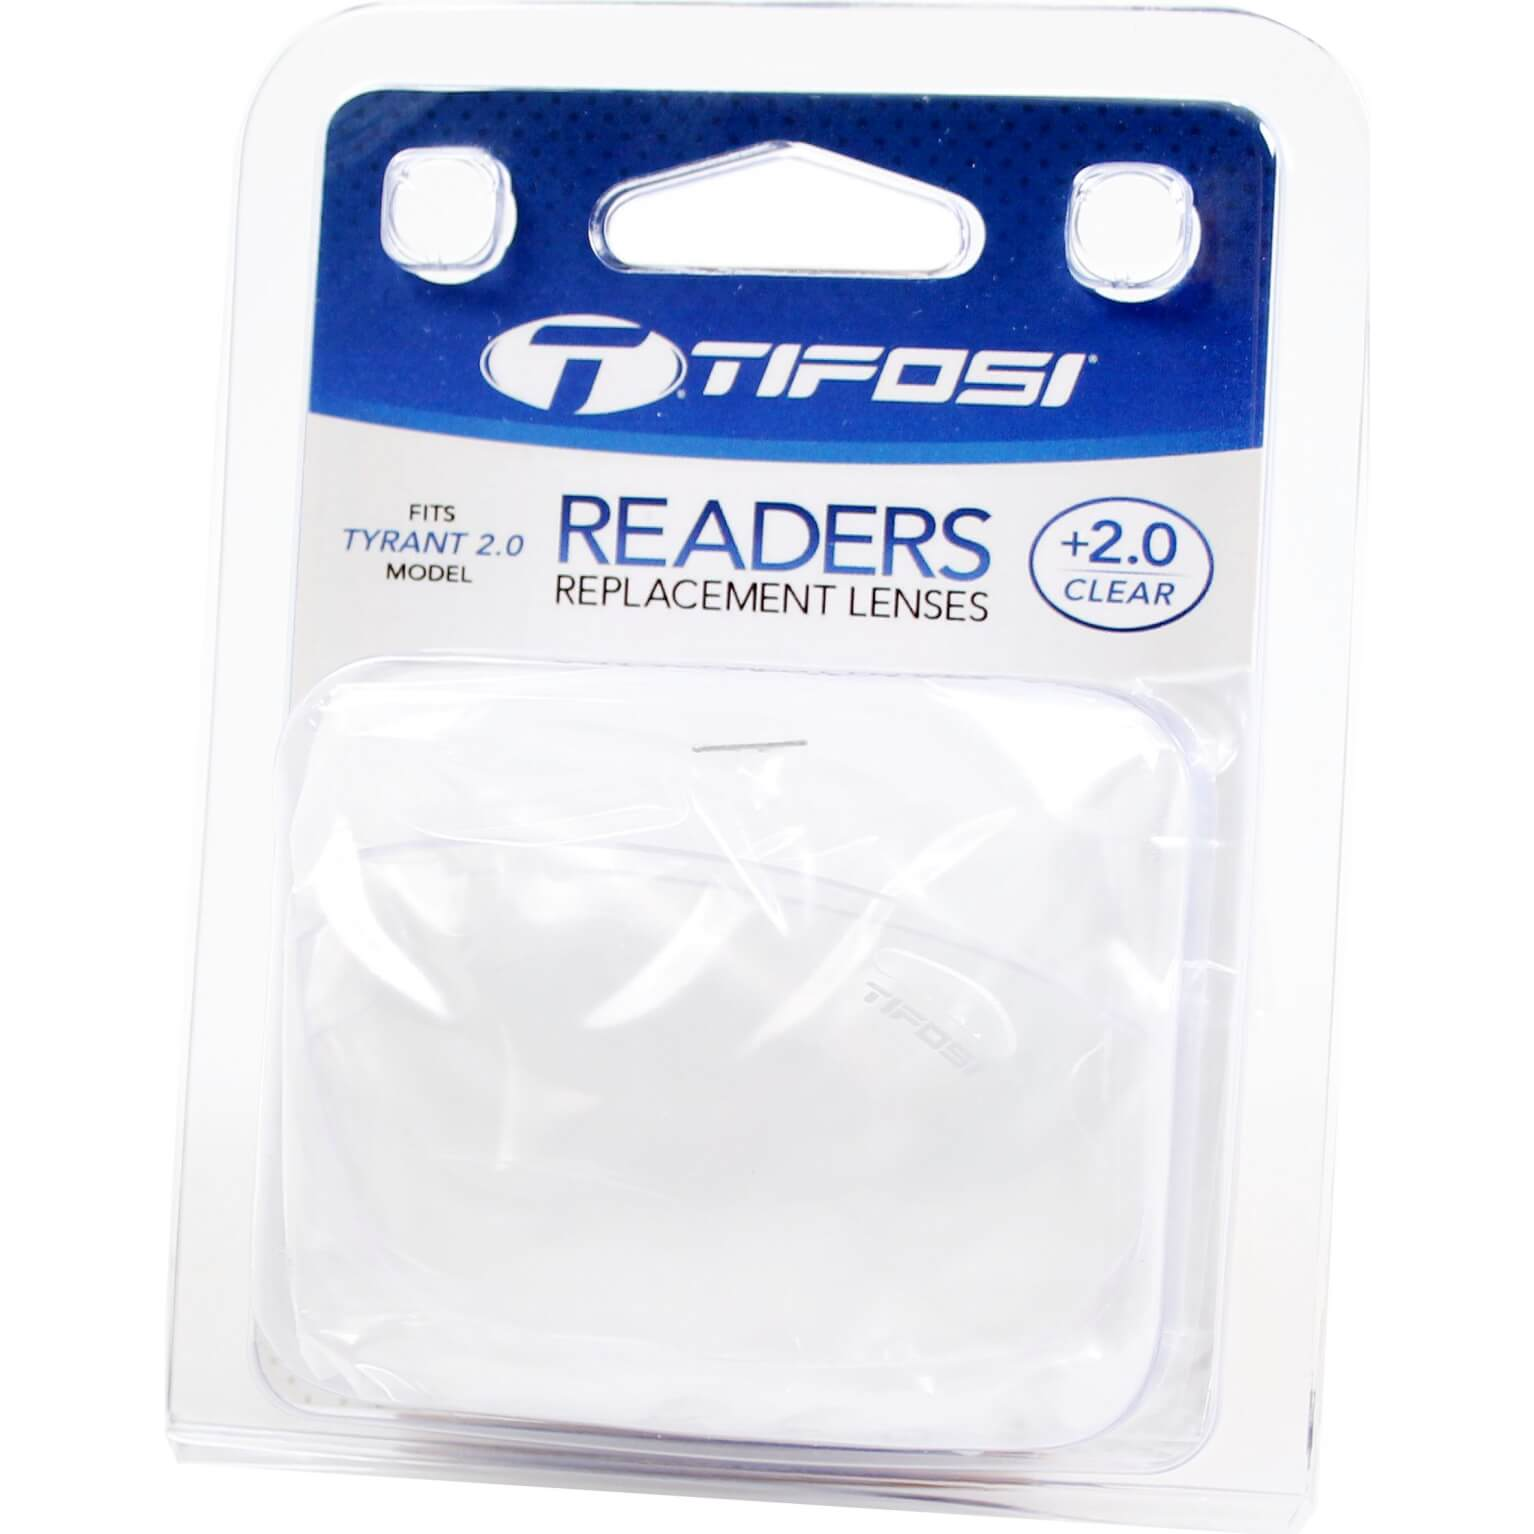 Tifosi Lens Reader Transparent +2.0 For Tyrant